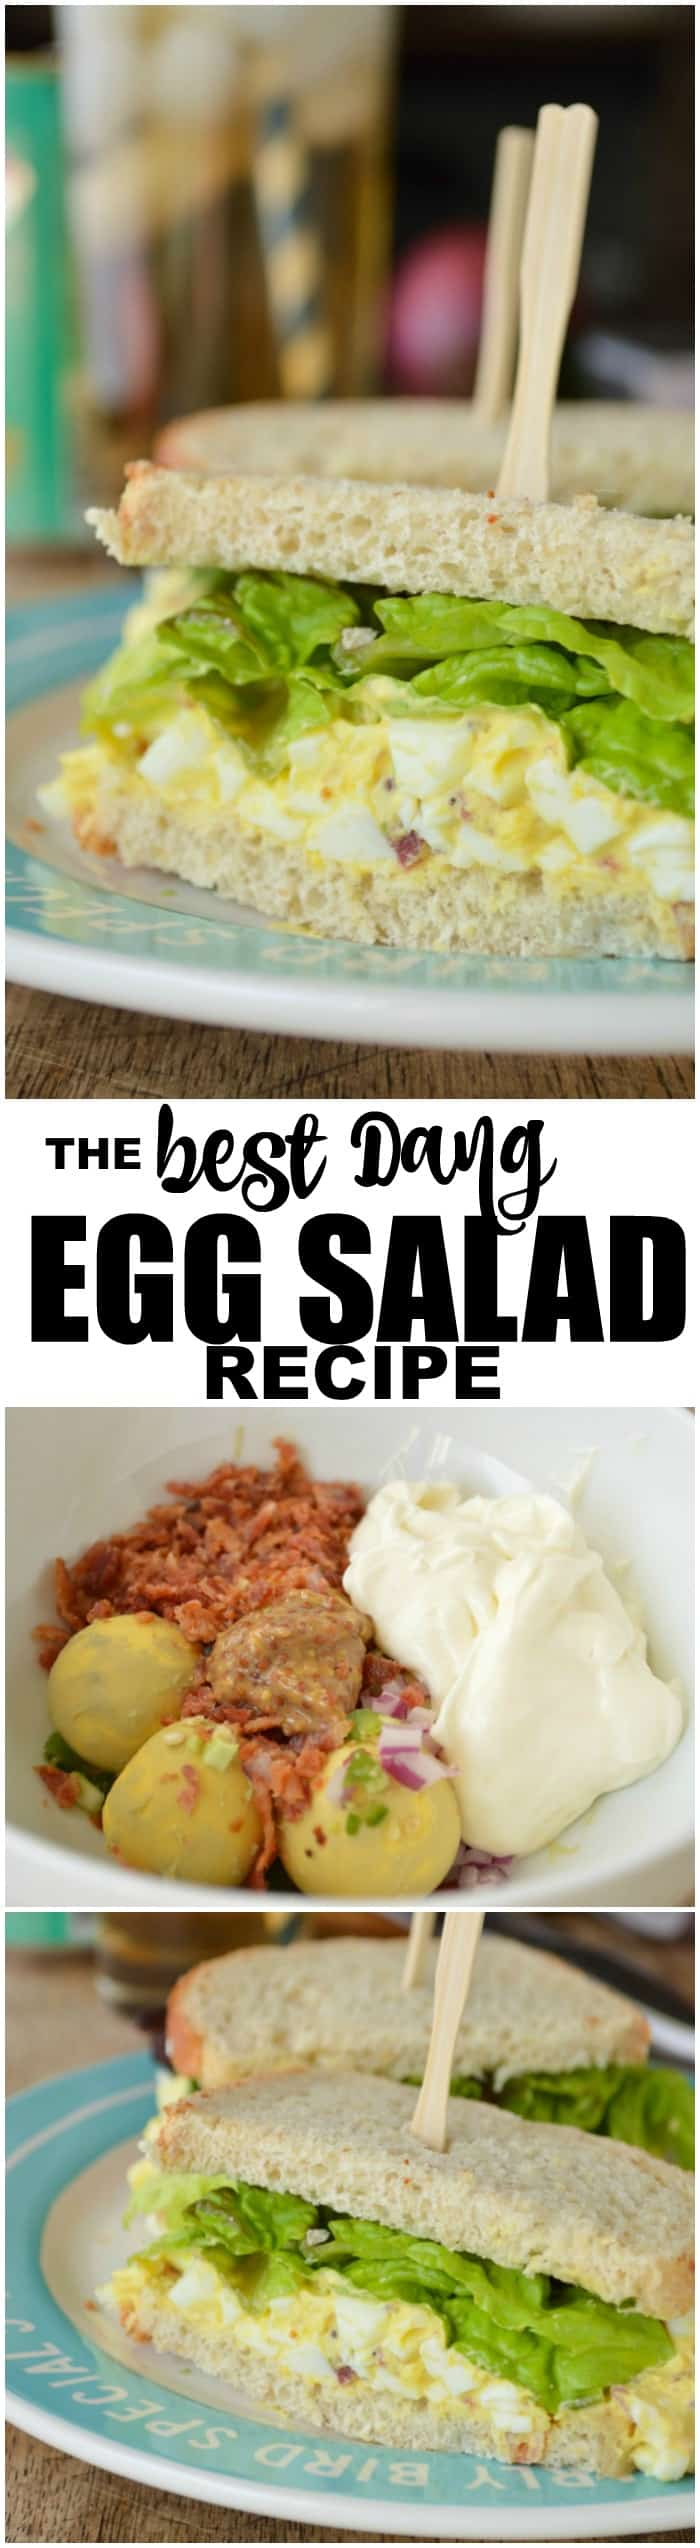 The Best Dang Egg Salad Recipe Ever